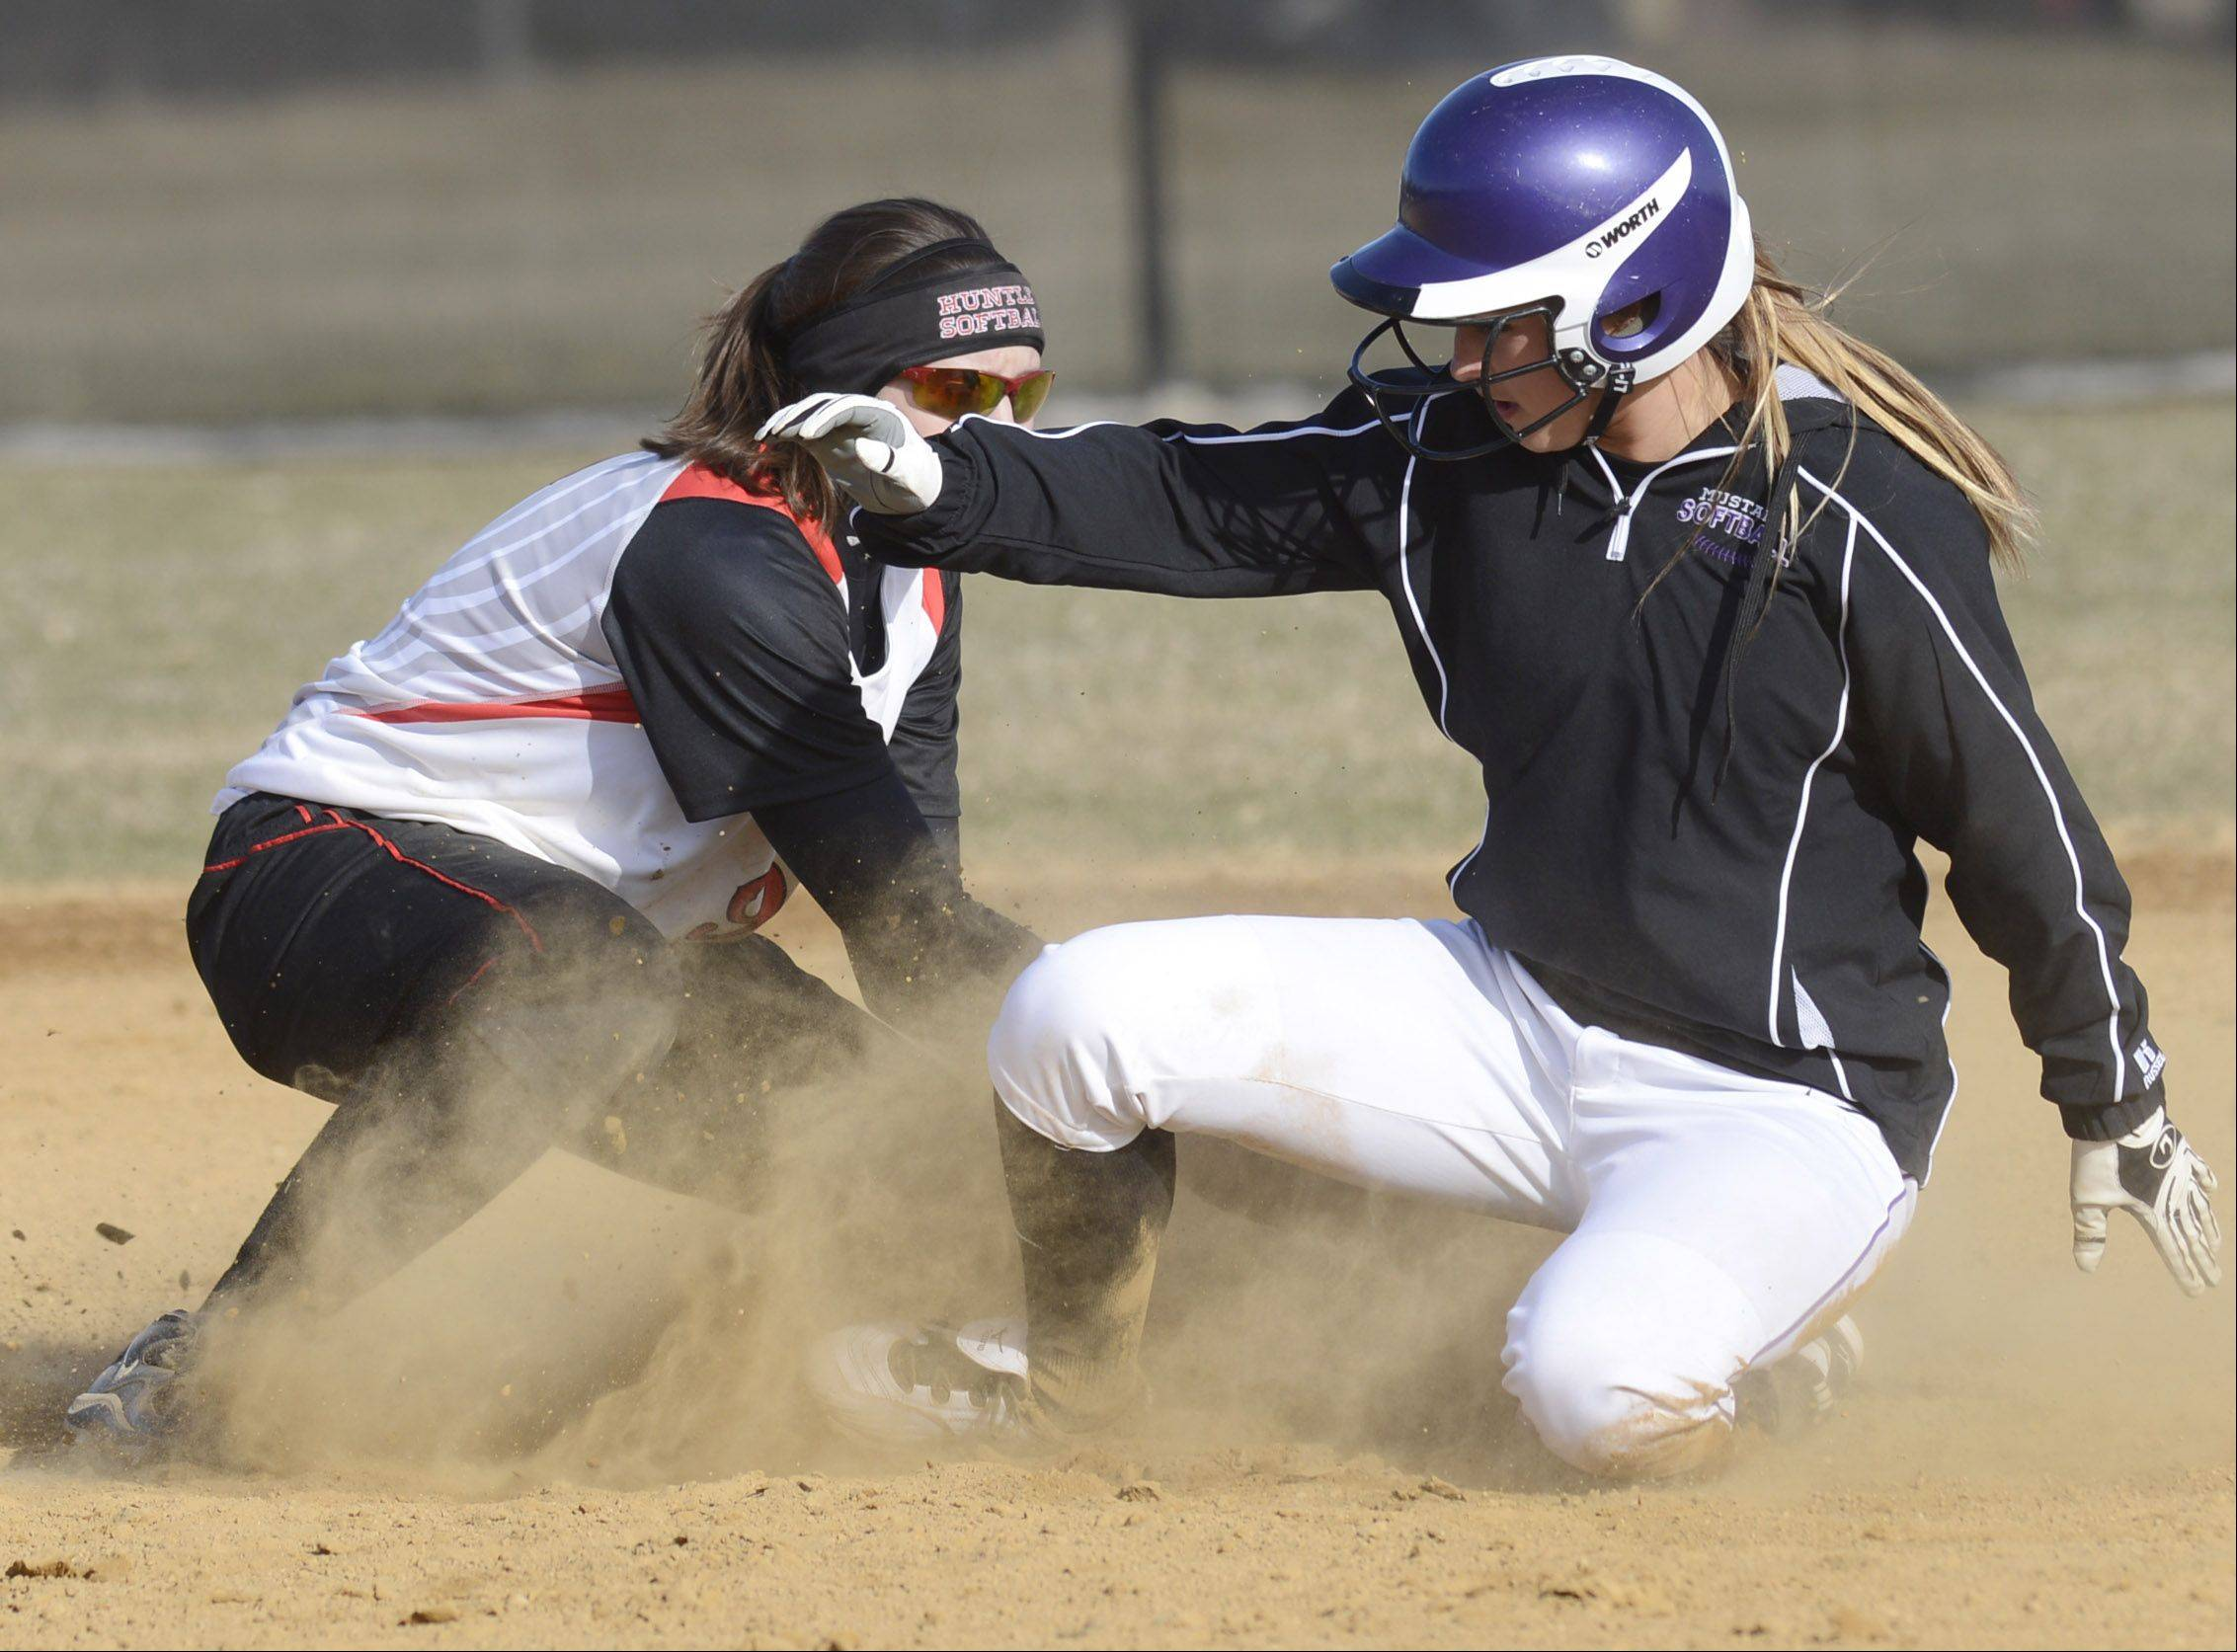 Rolling Meadow's Chloe Prodanovic slides safely into second base on a hit to right field as Huntley shortstop Miranda Peterson takes the throw during Wednesday's game.